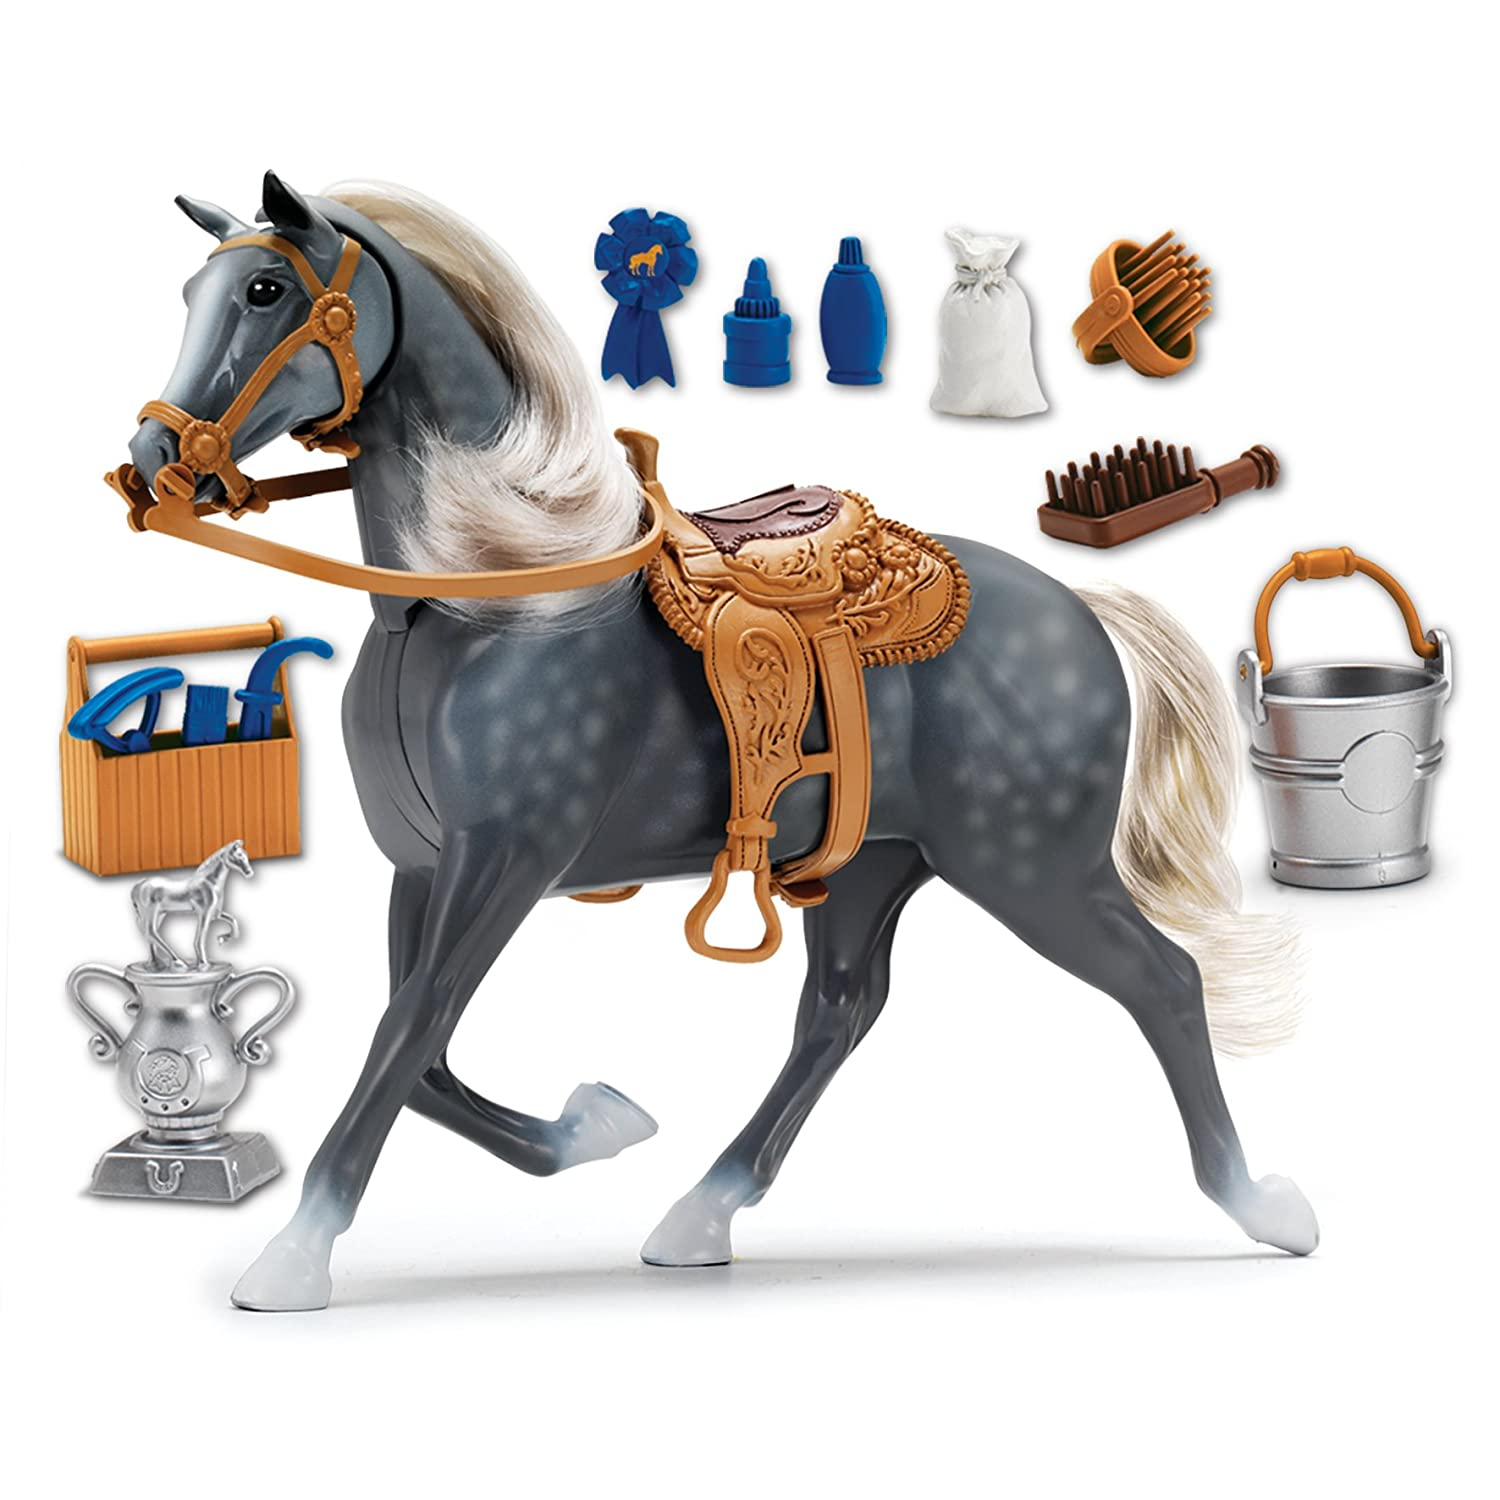 Deluxe Horse Morgan Toy Kids Play Set Grooming Girls Boys Sounds